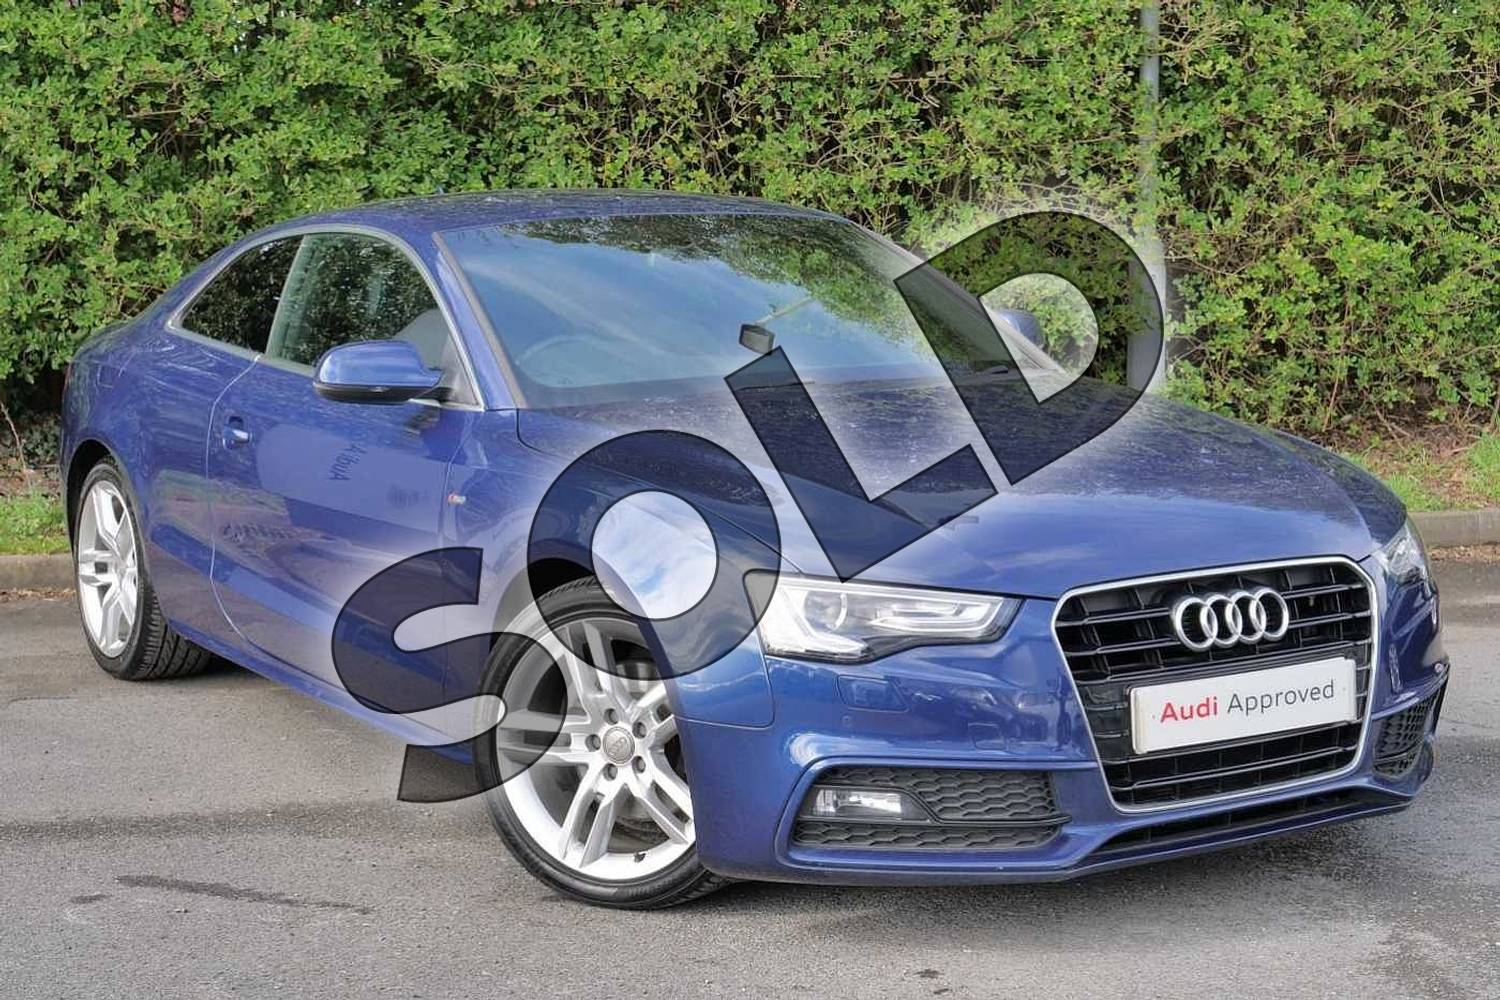 2016 Audi A5 Diesel Coupe 2.0 TDI 190 S Line 2dr Multitronic (Nav) in Scuba Blue Metallic at Worcester Audi